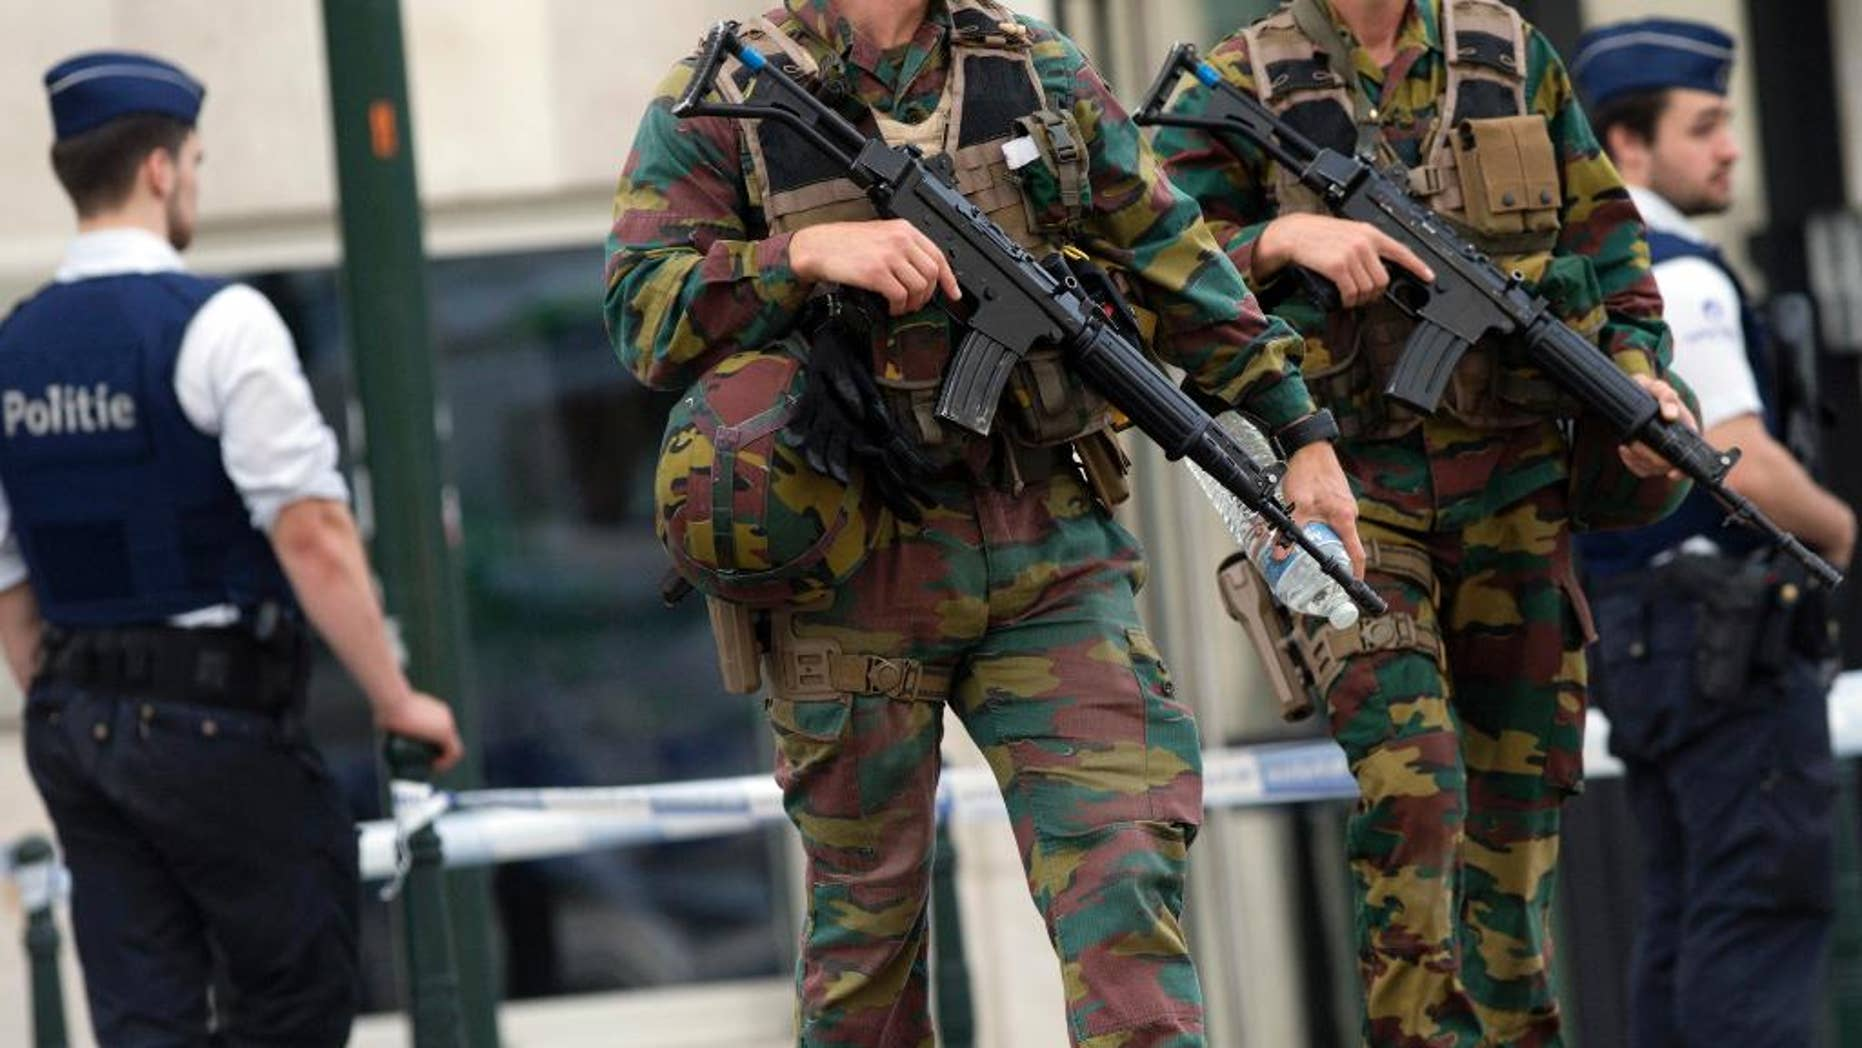 FILE - In this June 23, 2016, file photo, folice and Belgian Army soldiers patrol during a court hearing for suspect Mohamed Abrini, a suspect in the Paris and Brussels attacks, that were claimed by the Islamic State organization, at the Court of Appeals in Brussels. The threat of violence by people inspired by foreign extremists invokes fear in a majority of young Americans across racial groups. But for young people of color, particularly African Americans, that fear is matched or surpassed by worries about violence from white extremists. A new GenForward poll of Americans age 18-30 shows widespread anxiety among young people about attacks from both inside and outside the United States. (AP Photo/Virginia Mayo, File)